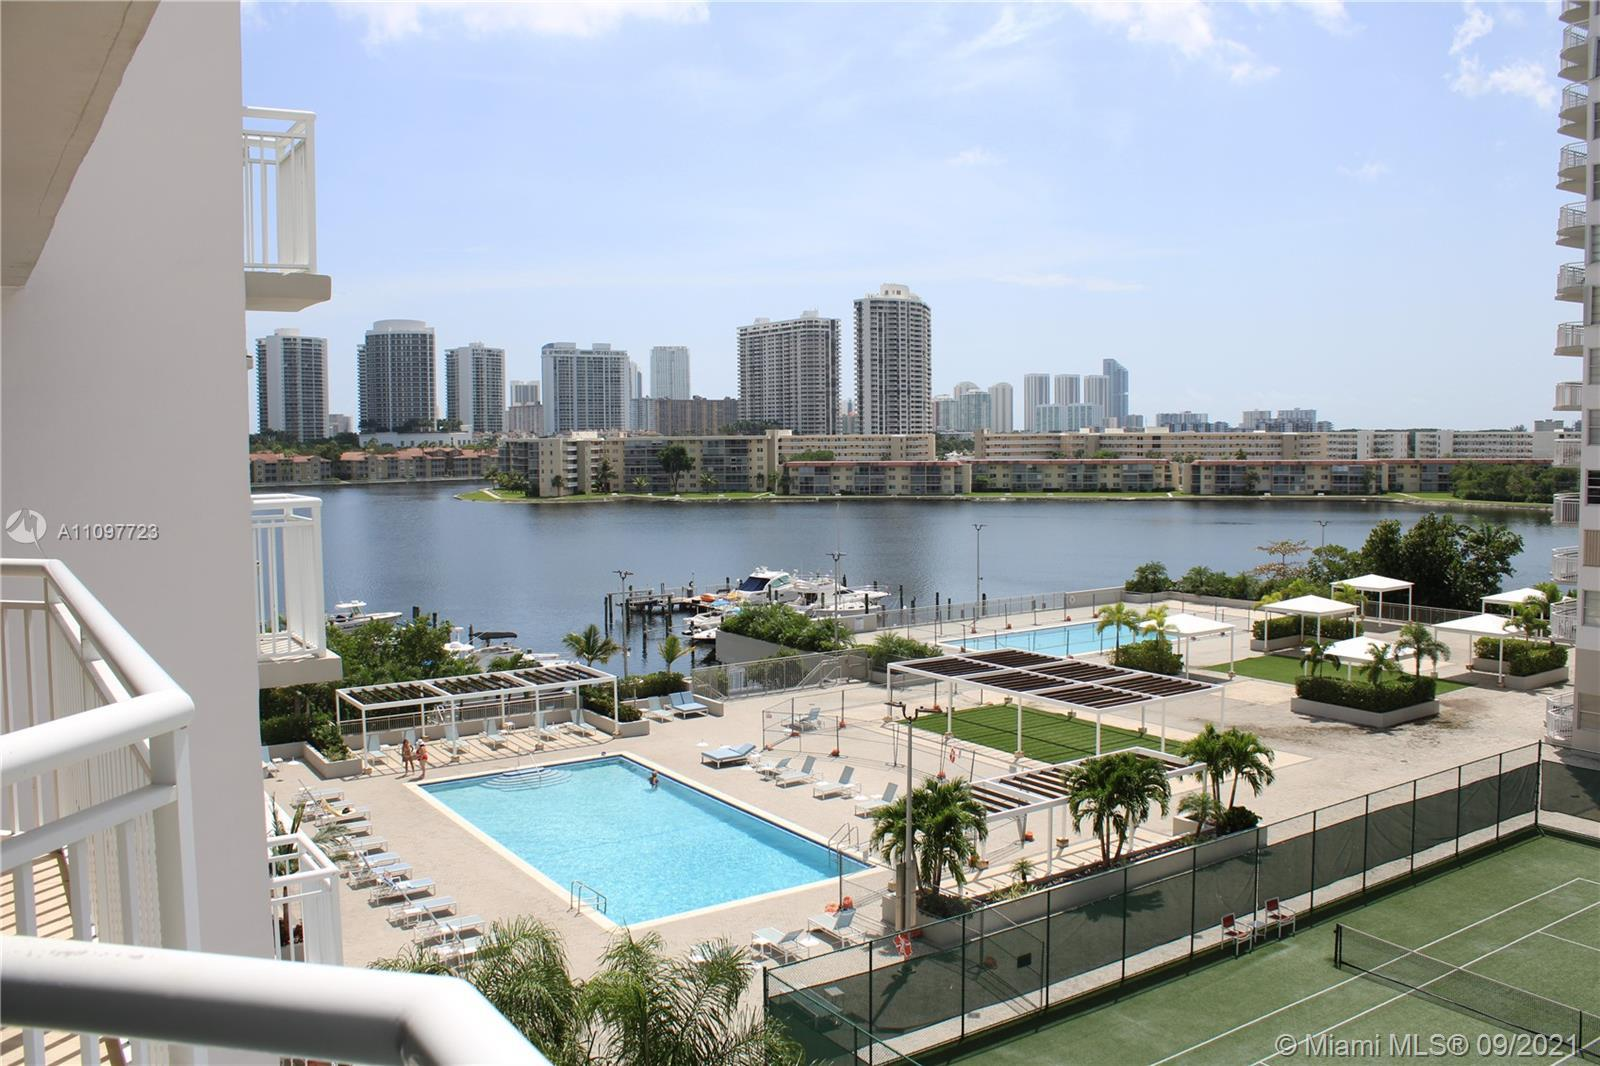 Breathtaking views from this 2BD/2BA waterfront condo in the heart of Aventura! This unit features l